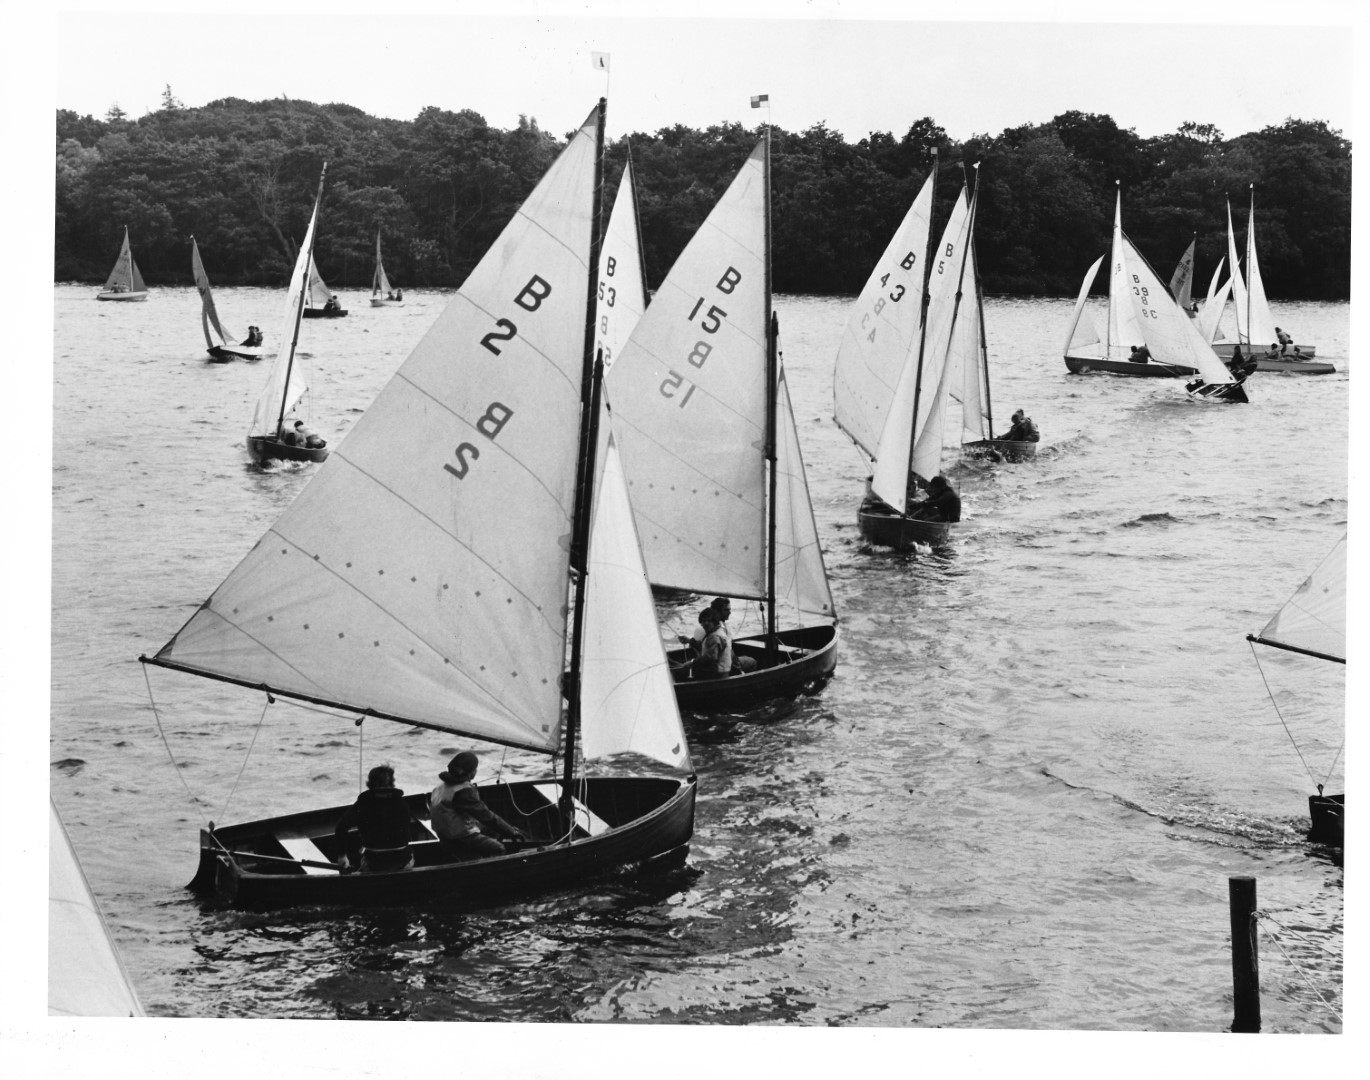 Norfolk Dinghy - Wroxham Week 24.07.1975